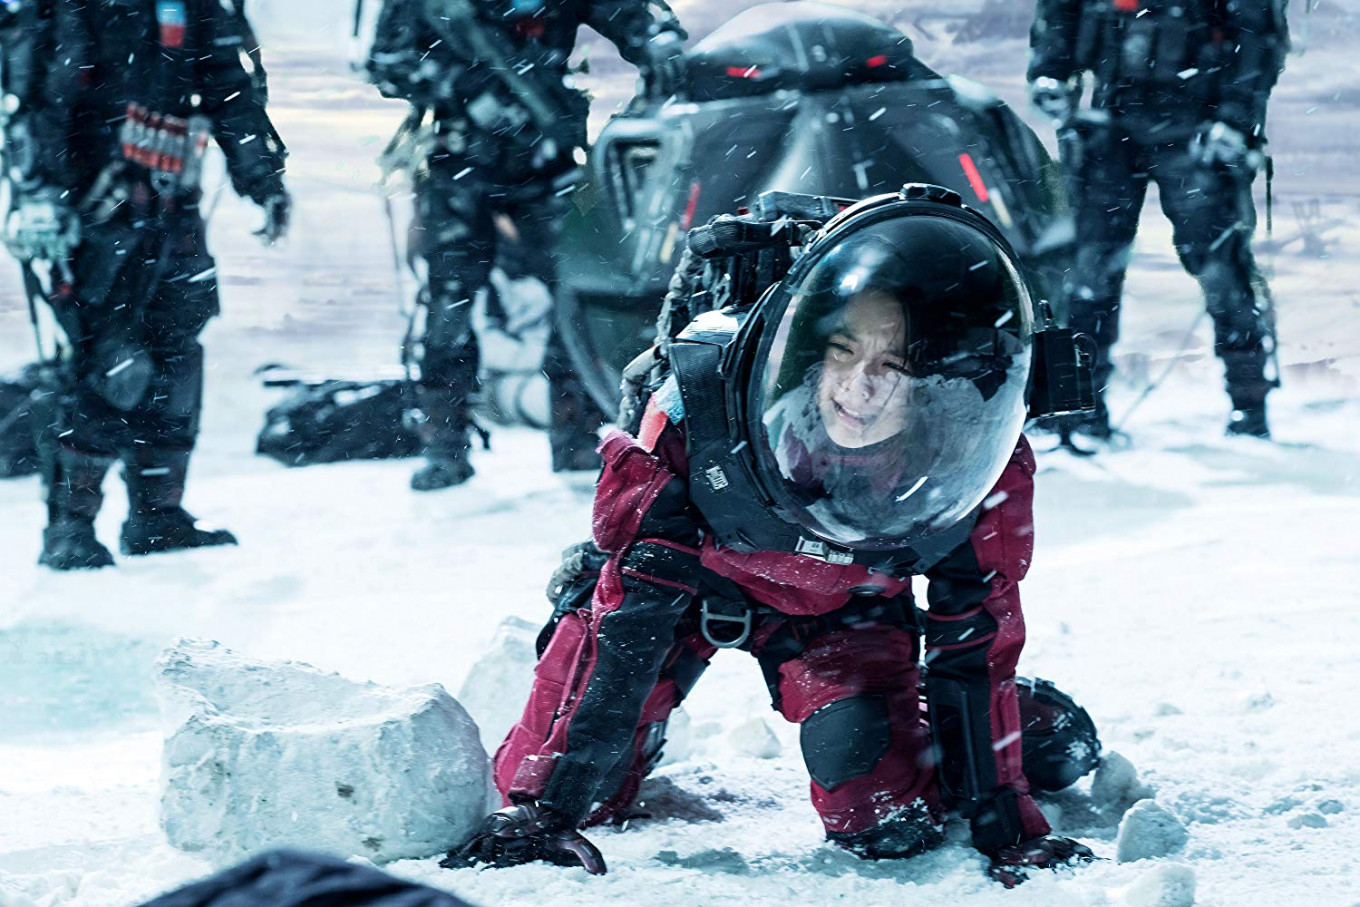 'The Wandering Earth' on track to become China's highest-grossing film